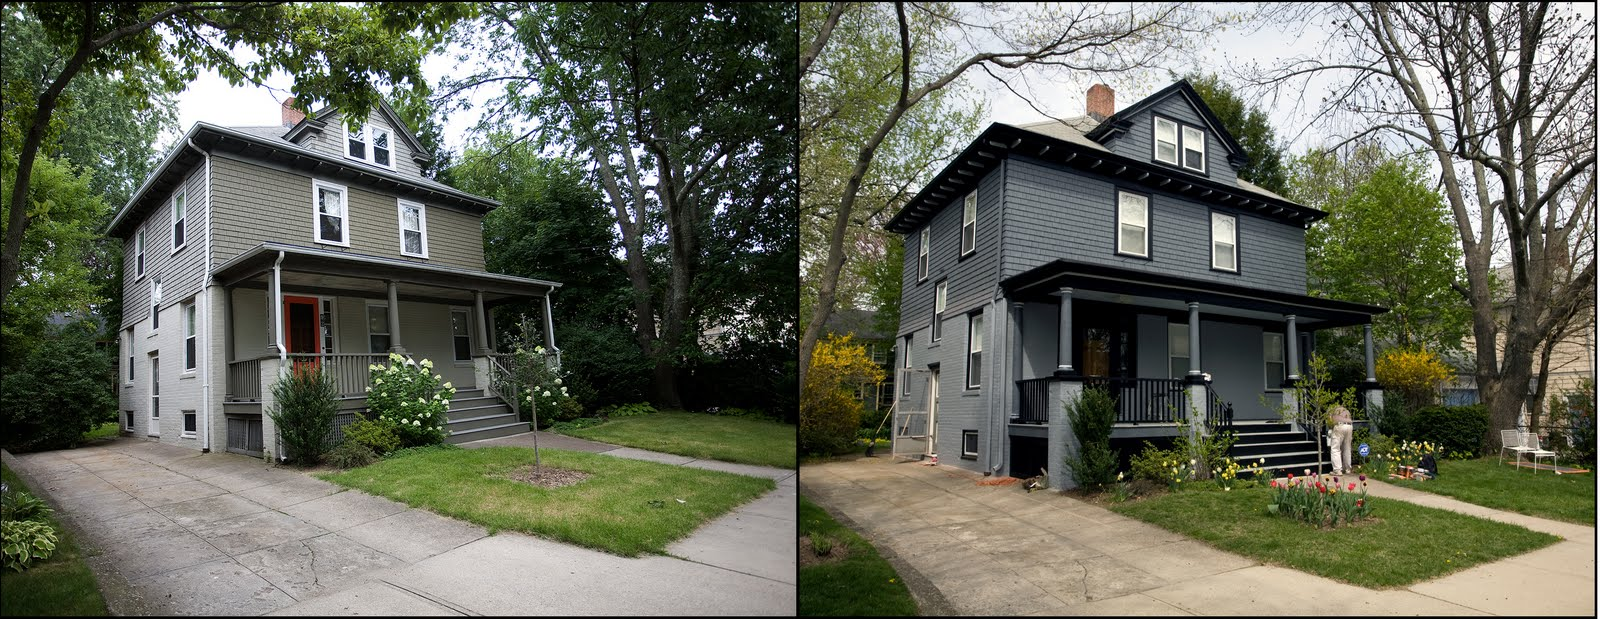 Before and after home renovations for External house renovation